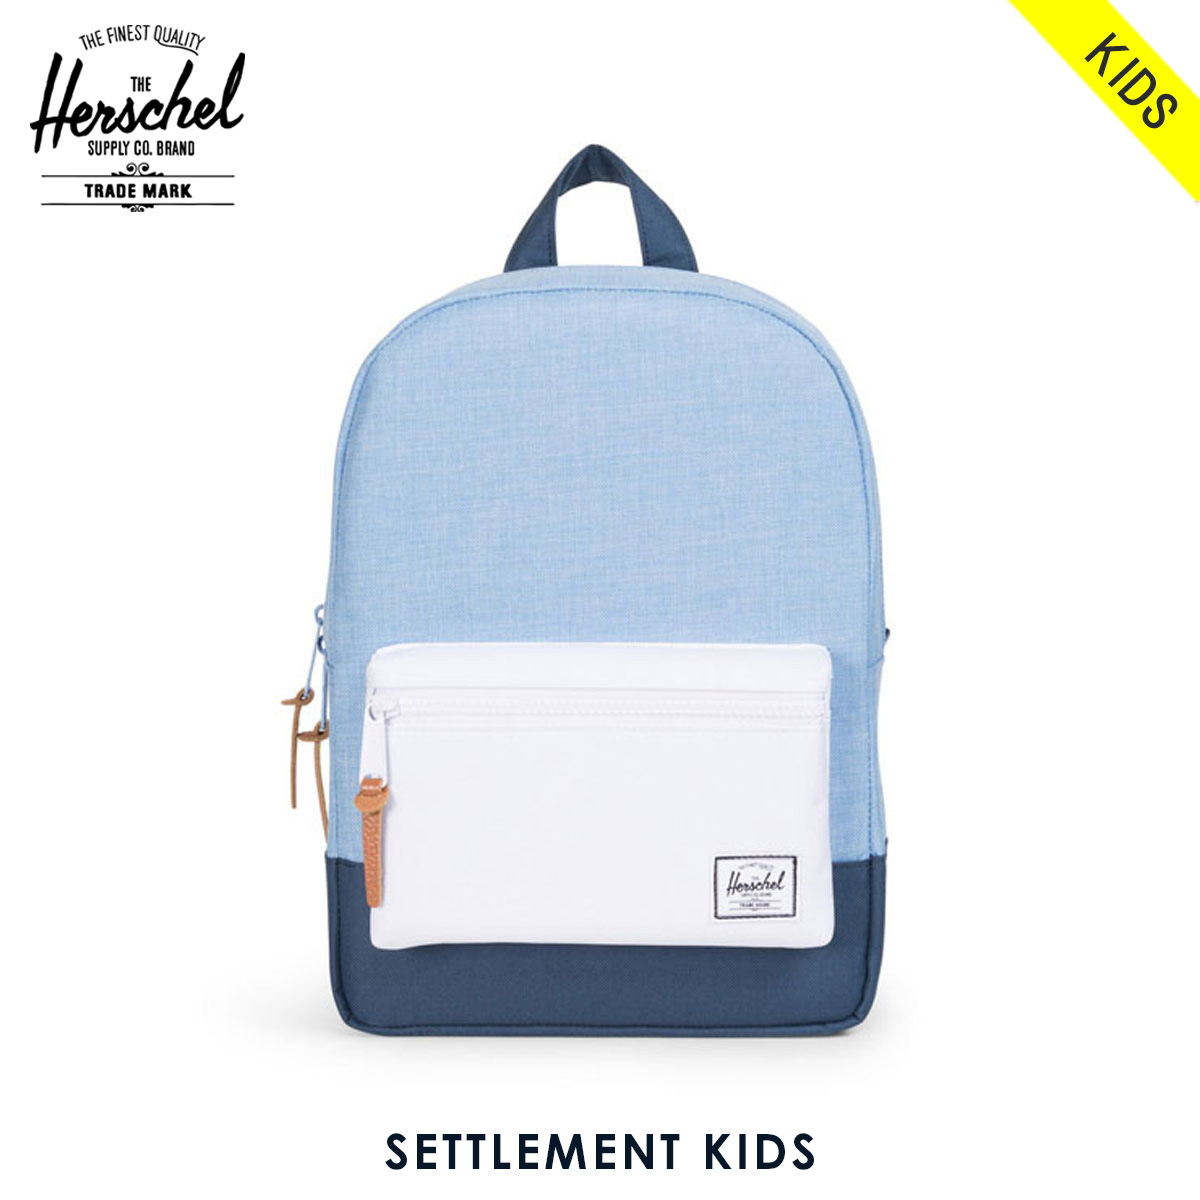 a045dcf99f2 Herschel Herschel Supply regular sale stores children s bags backpack  SETTLEMENT KIDS KIDS 10074-01080-OS CHAMBRAY NAVY WHITE NAVY 10P28Sep16